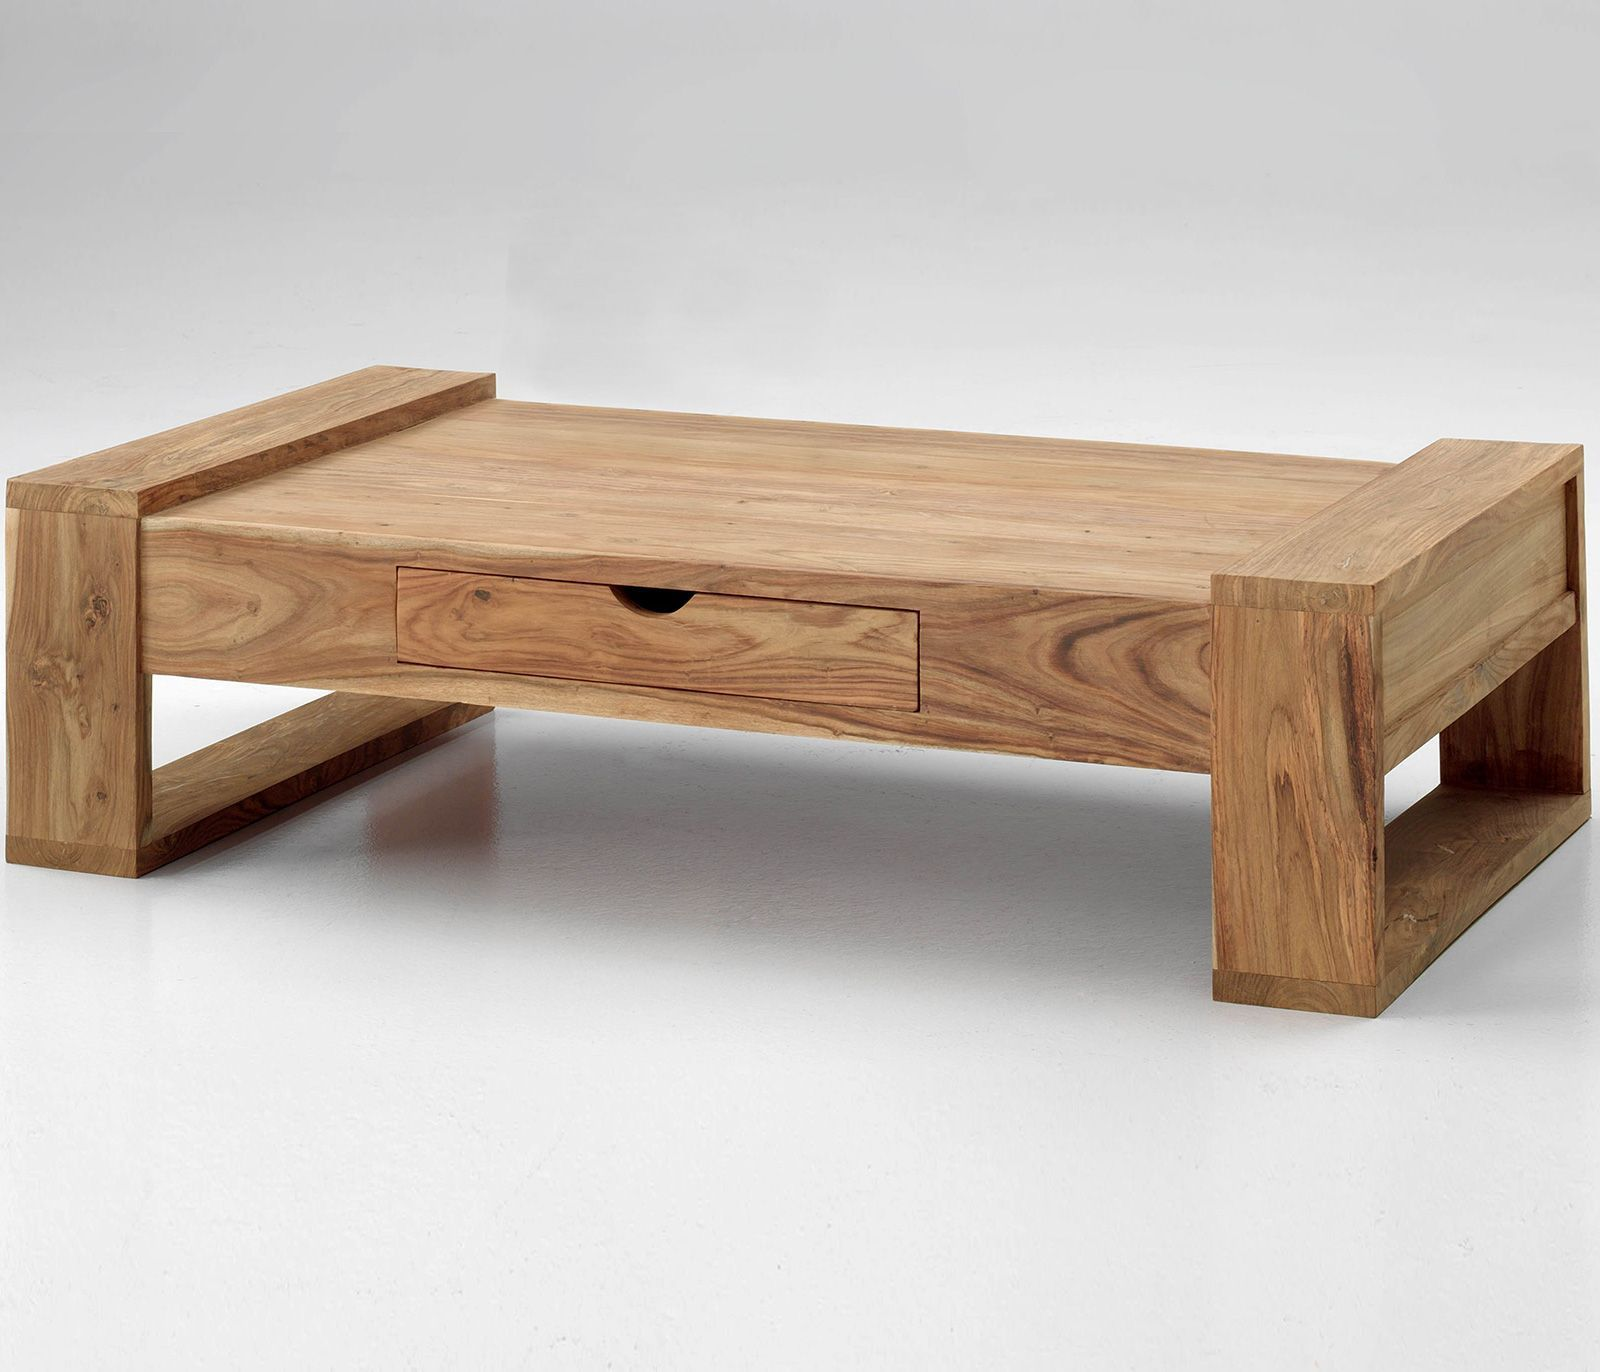 Download wallpaper reclaimed wood coffee table x reclaimed for Reclaimed teak wood coffee table